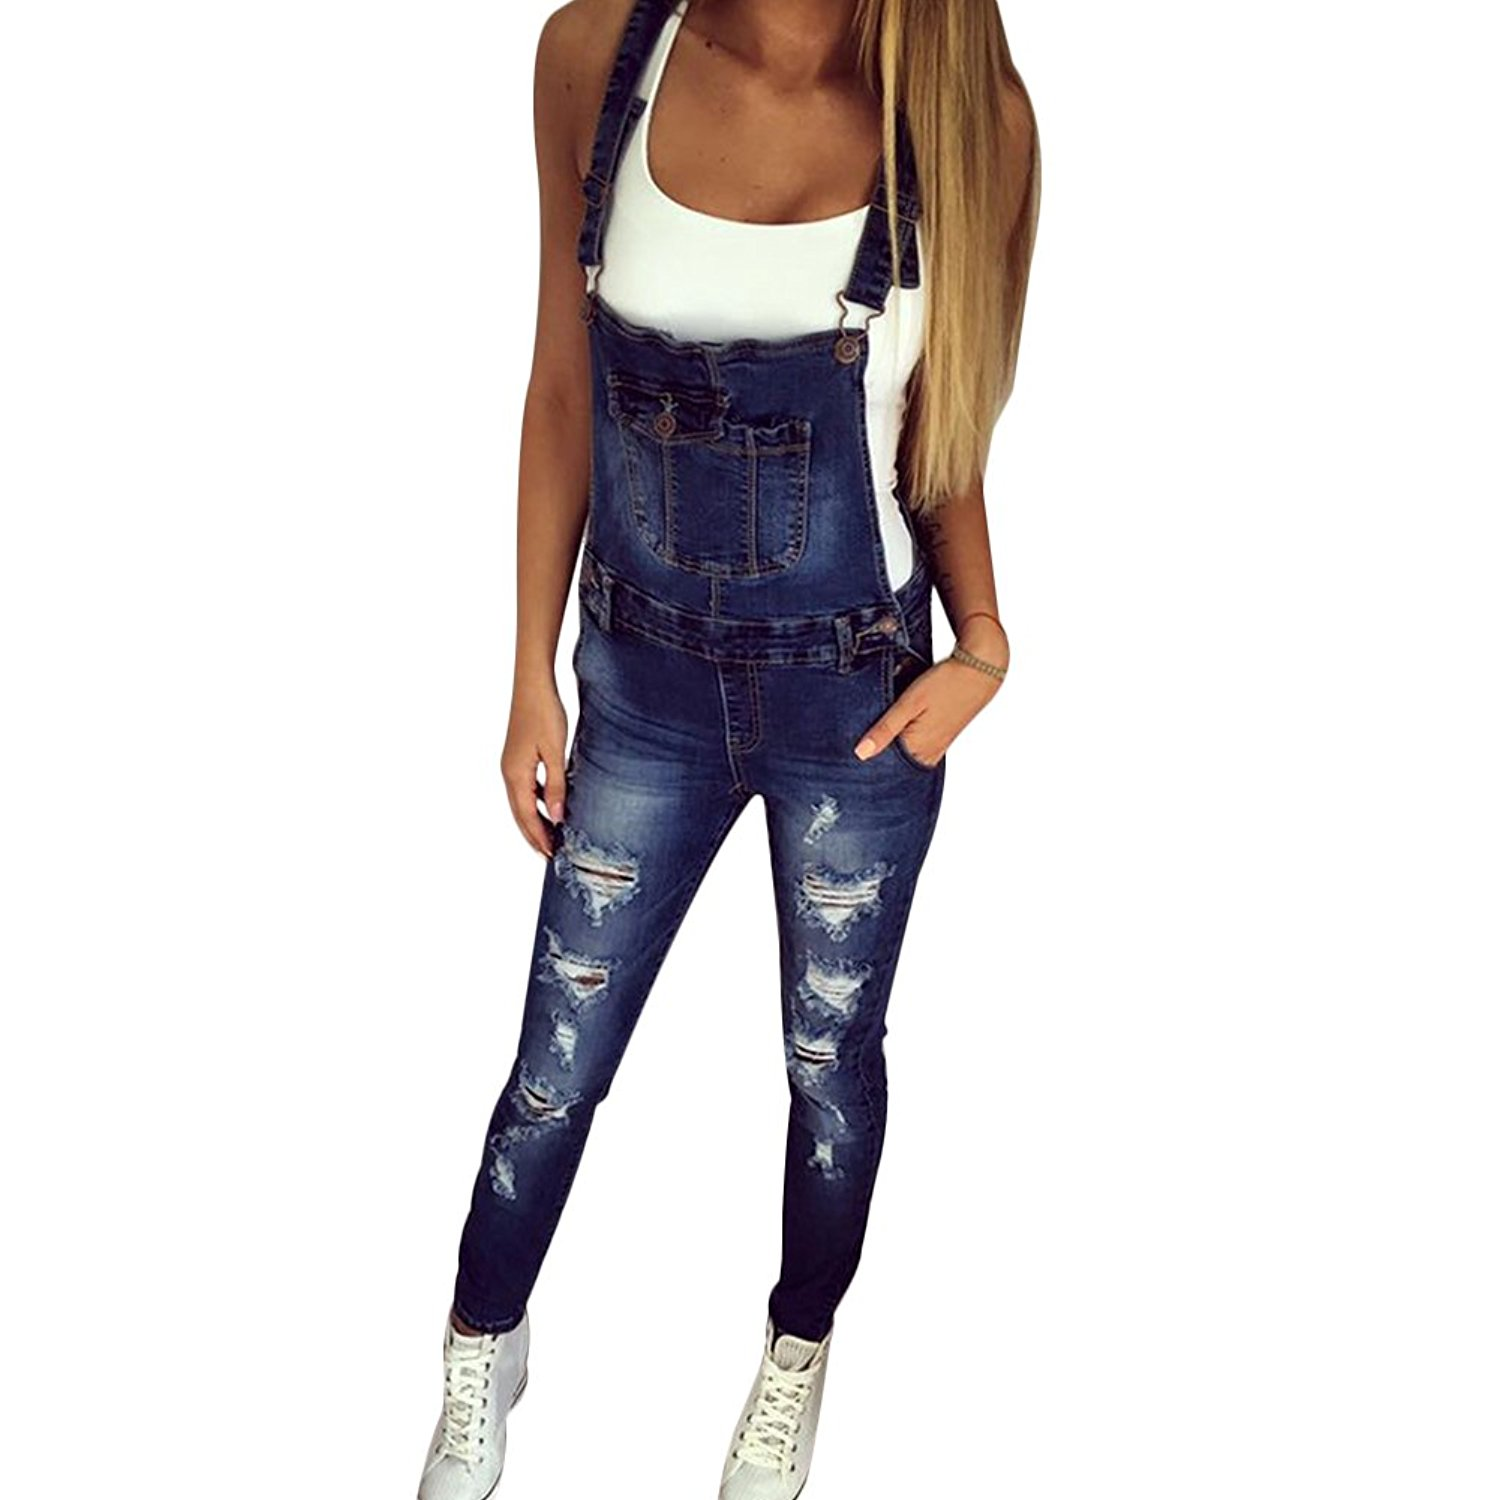 2a0e0629f5f3 Get Quotations · CHICFOR Womens Overall Denim Jeans Adjustable Strap Ripped Hole  Bib Overall Jeans Jumpsuit